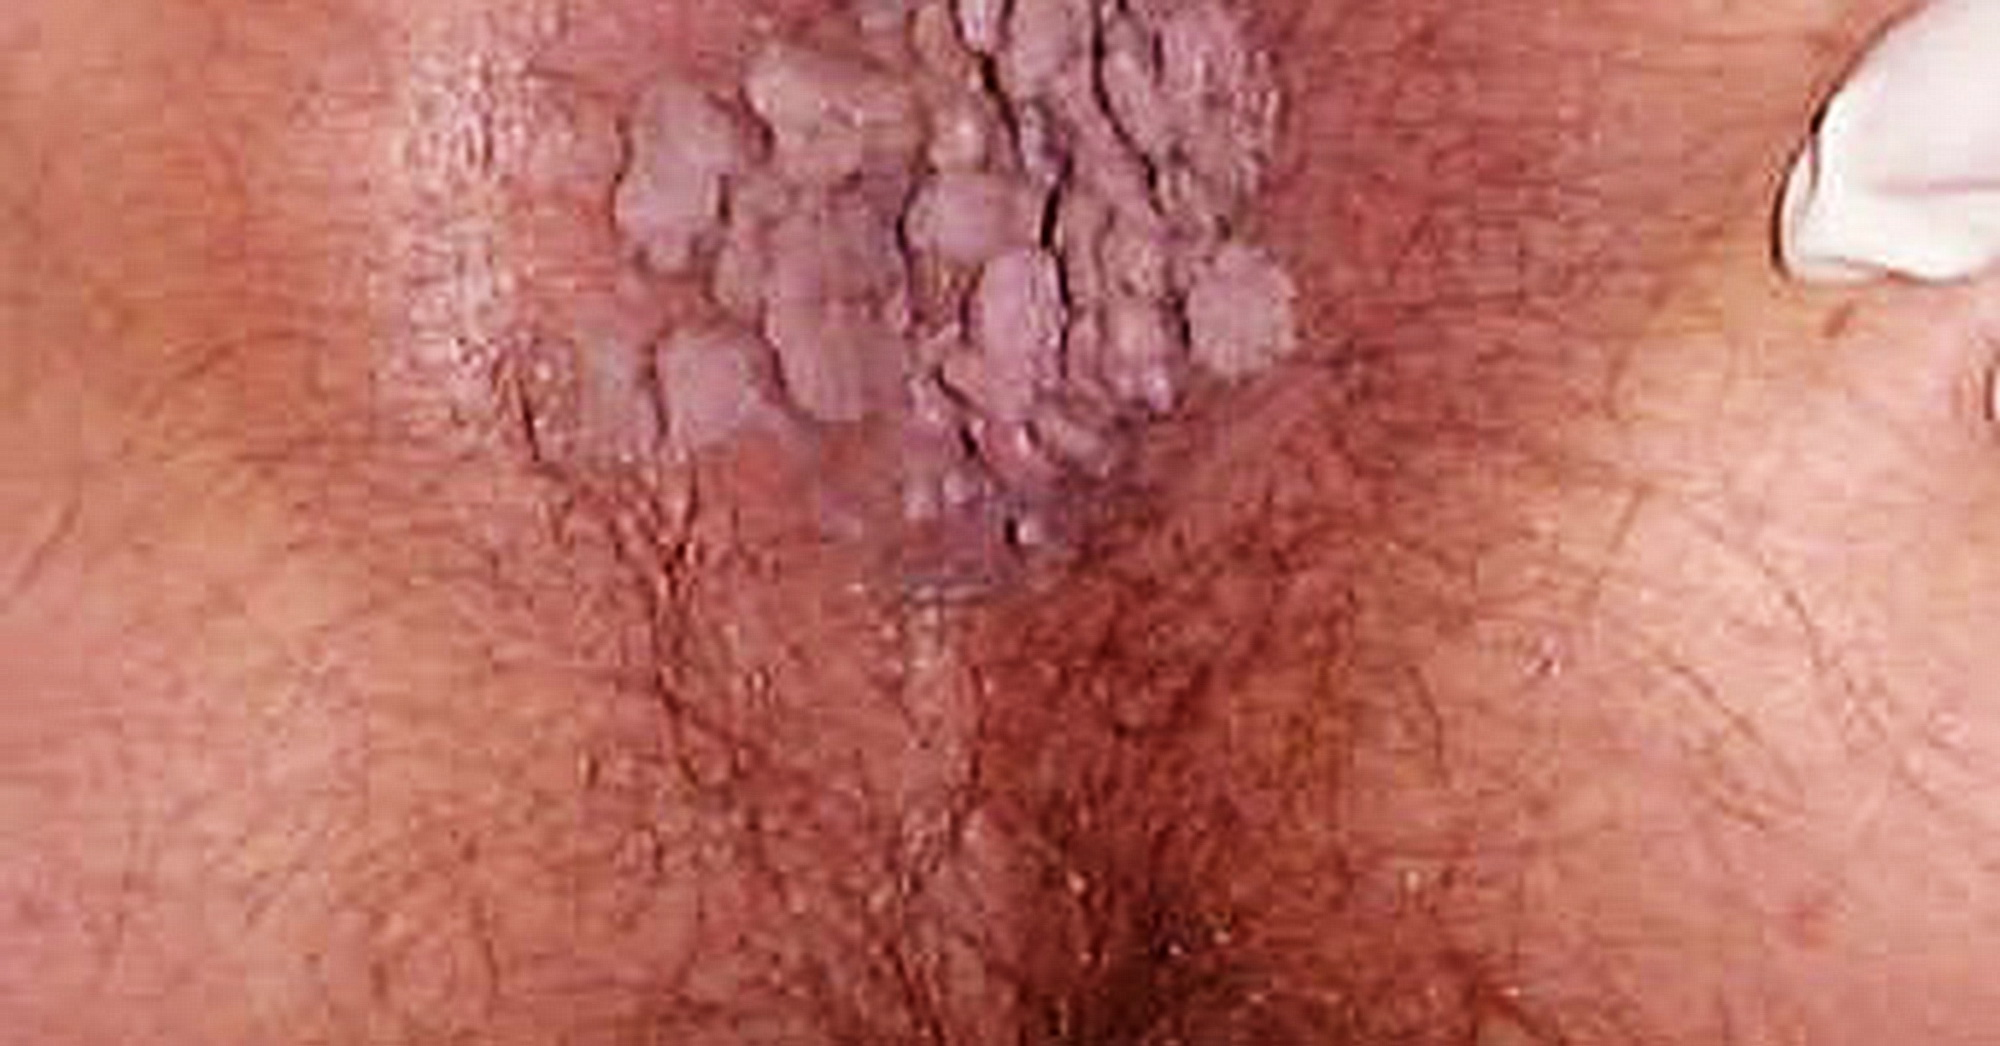 hpv anale sintomi